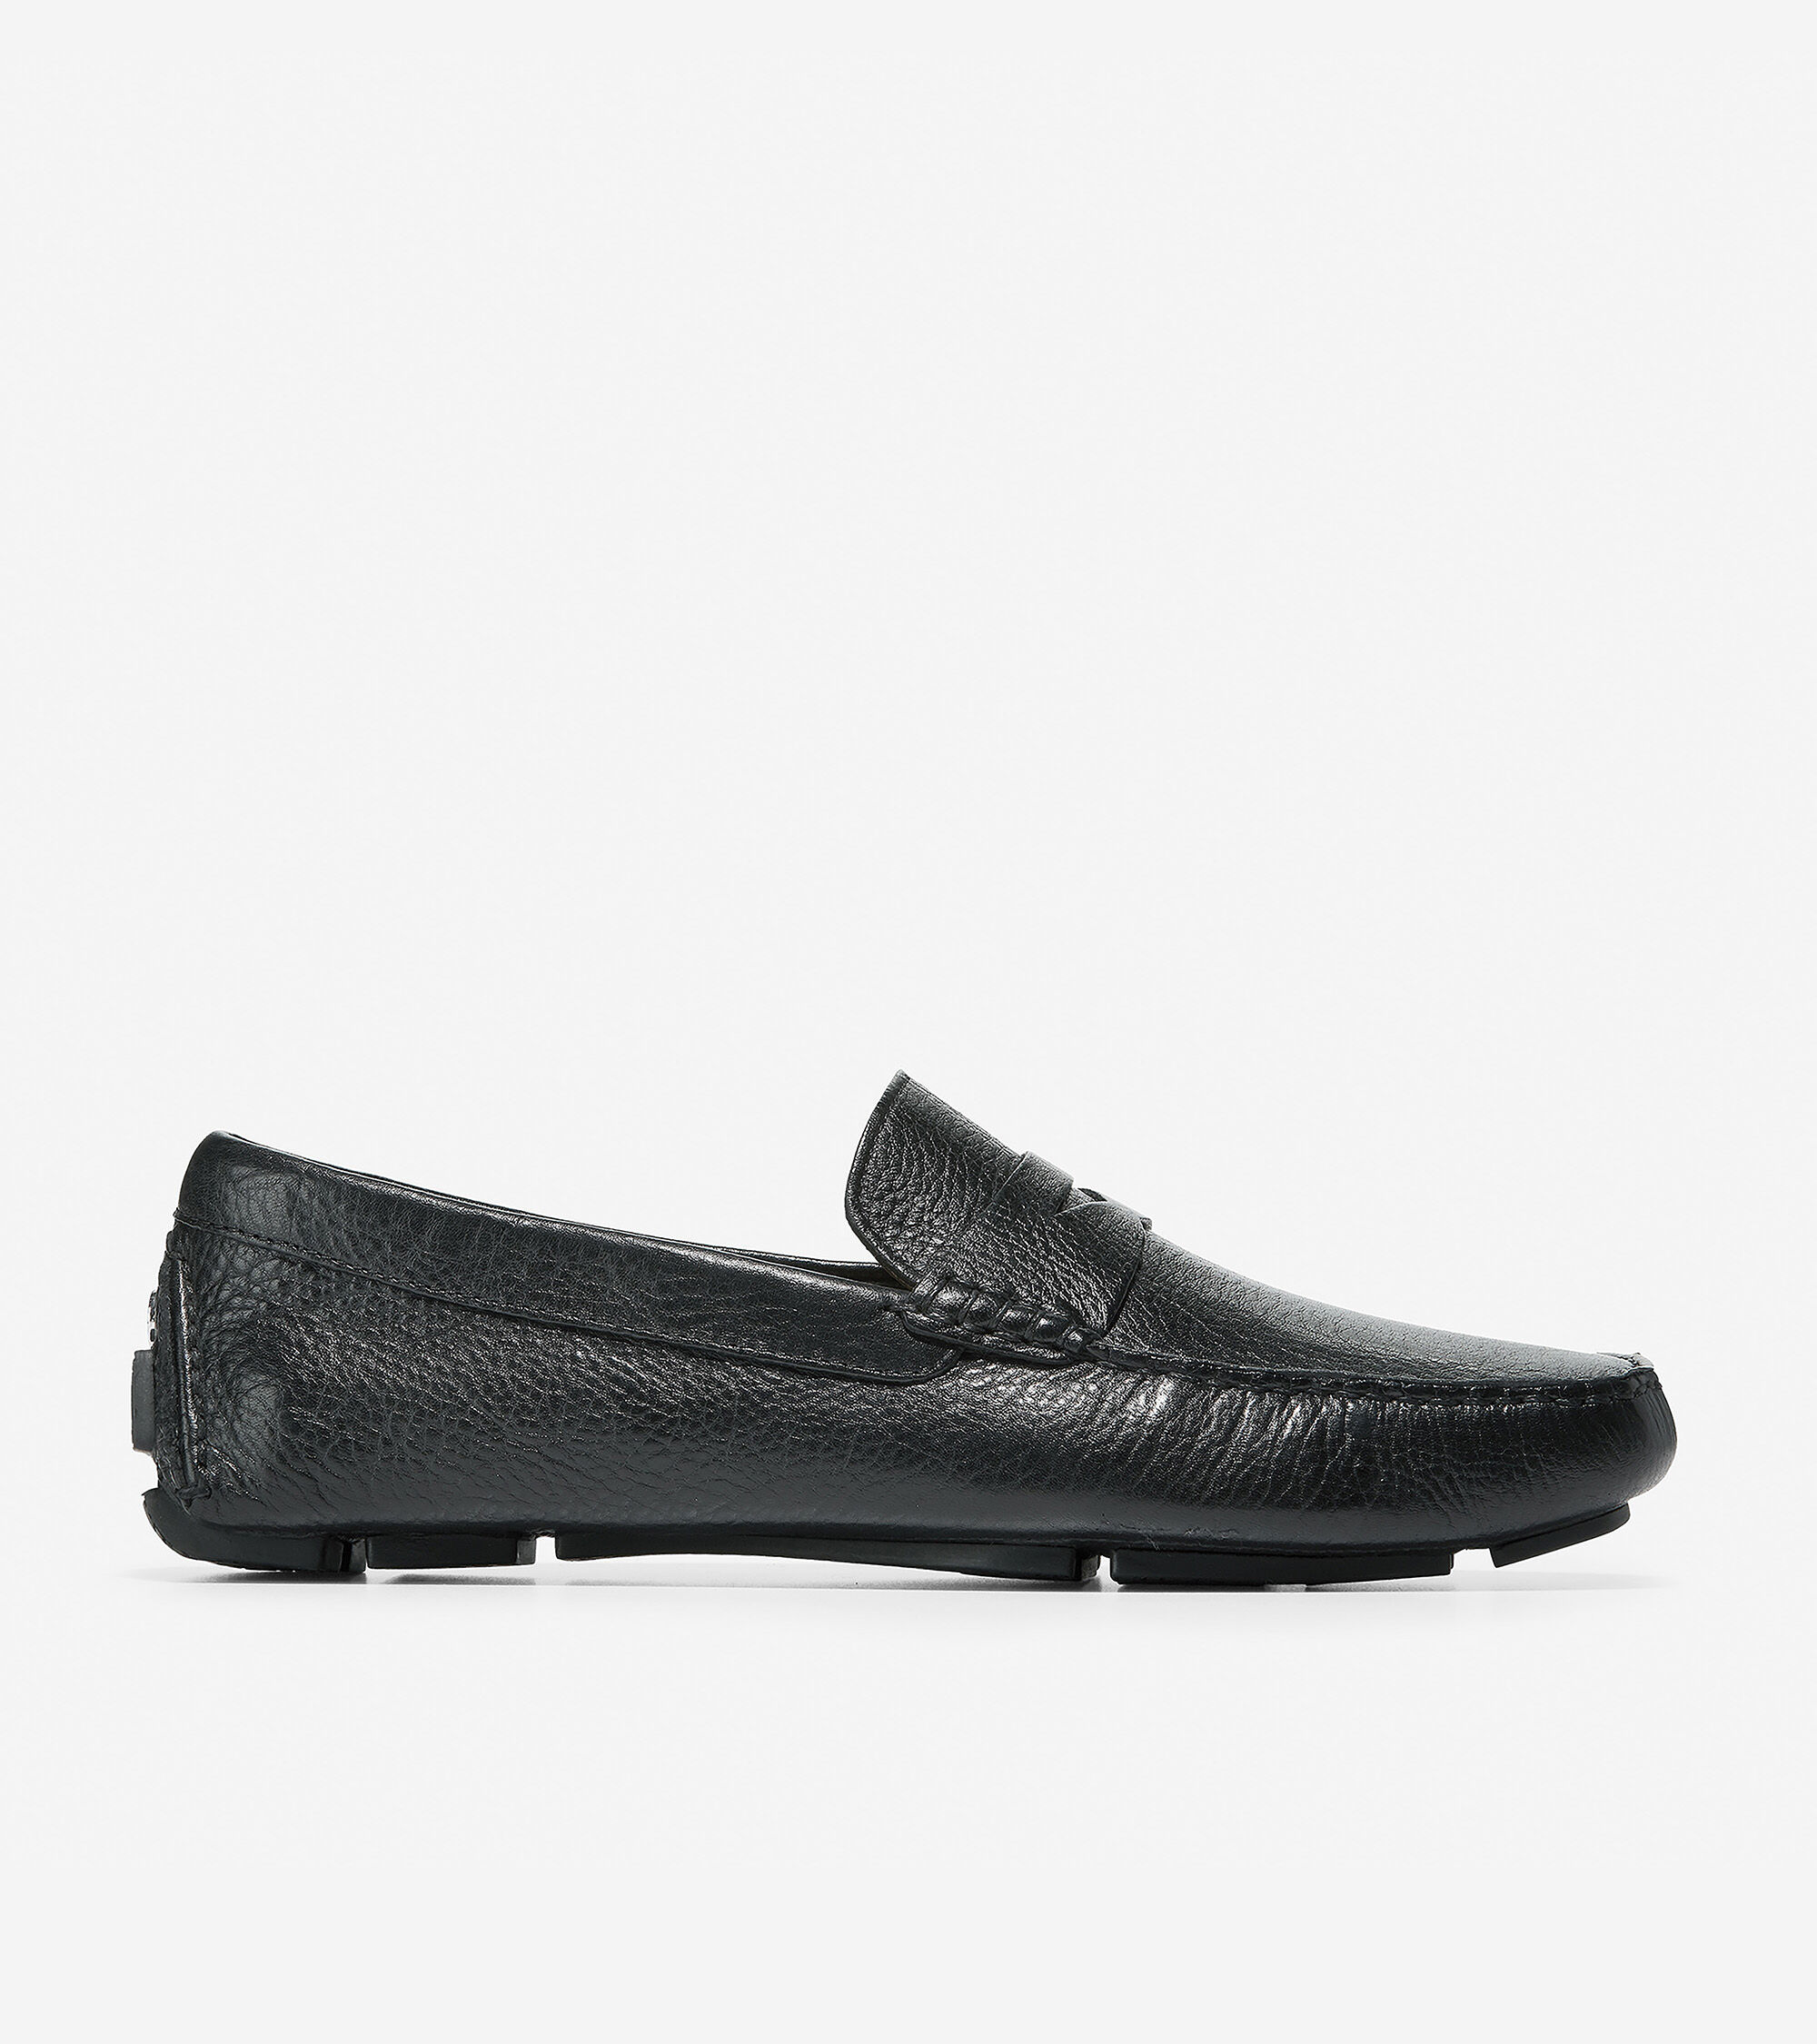 Note: Sizing runs small. We recommend ordering a half size up. Calfskin upper. Contrast stitch and signature hardware detail at the heel. Genuine hand sewn on the last moccasin construction. Unlined comfort. Rubber driving sole.